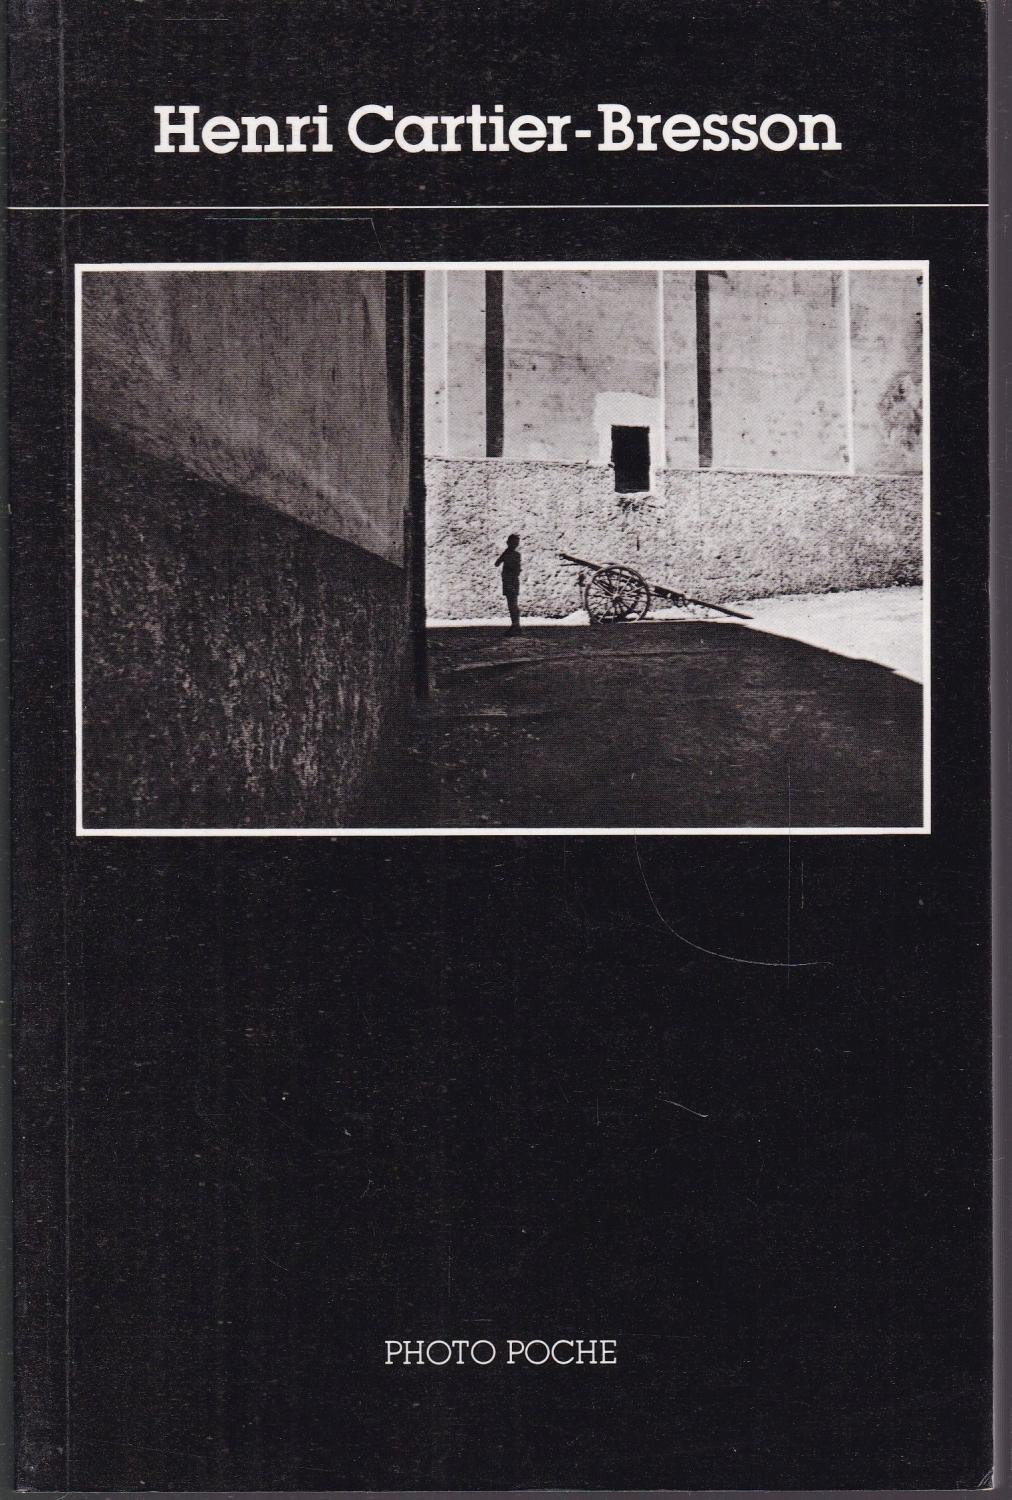 Henri Cartier-Bresson. Introduction par Jean Clair.: Cartier-Bresson, Henri